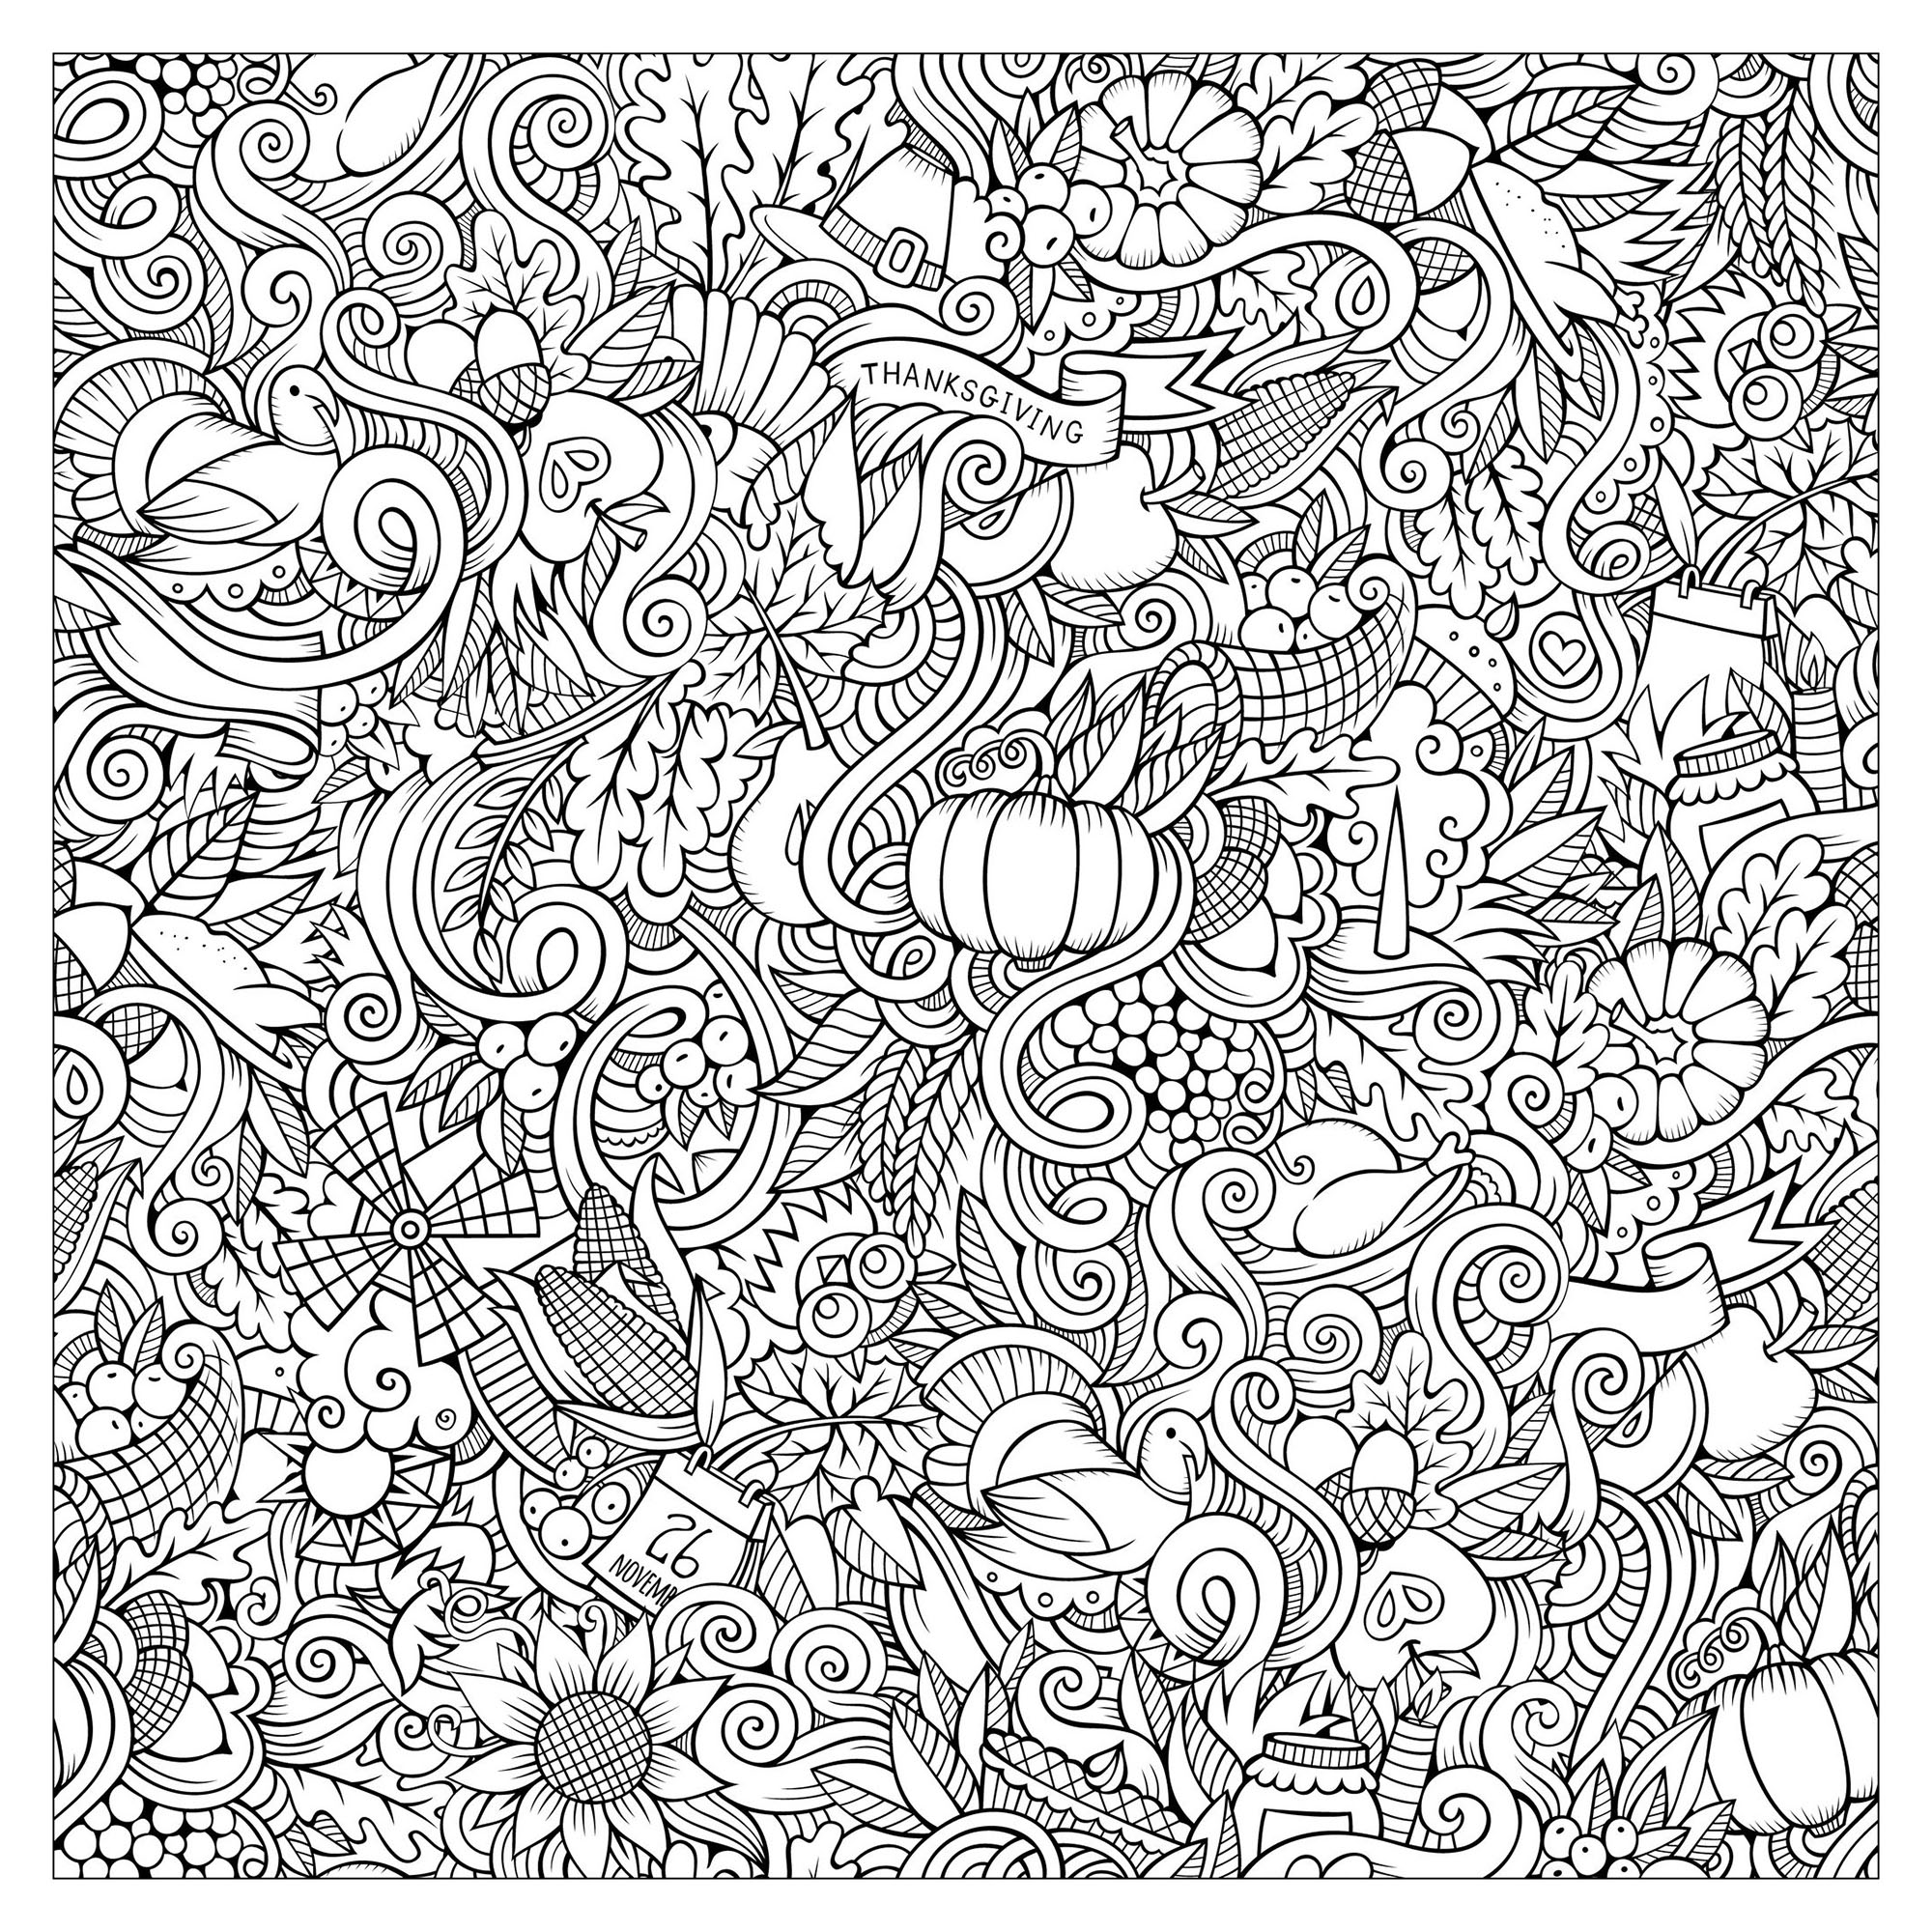 coloring book for adults souq 15 crazy busy coloring pages for adults page 16 of 16 souq book adults for coloring